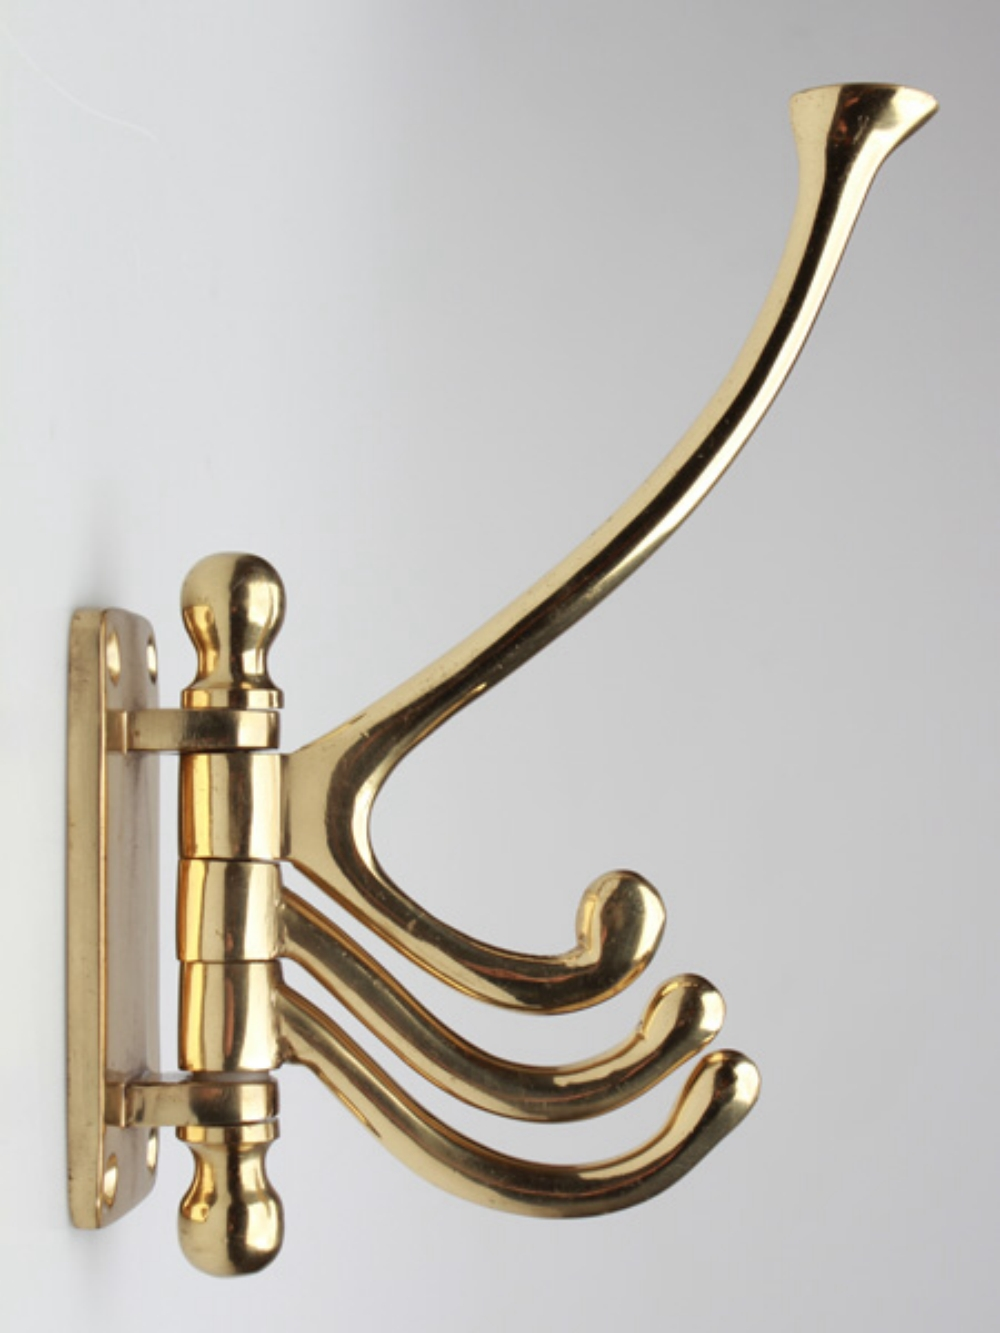 Three Arm Swivel Hook in Solid Thick Brass for Coats Towels Robe or more